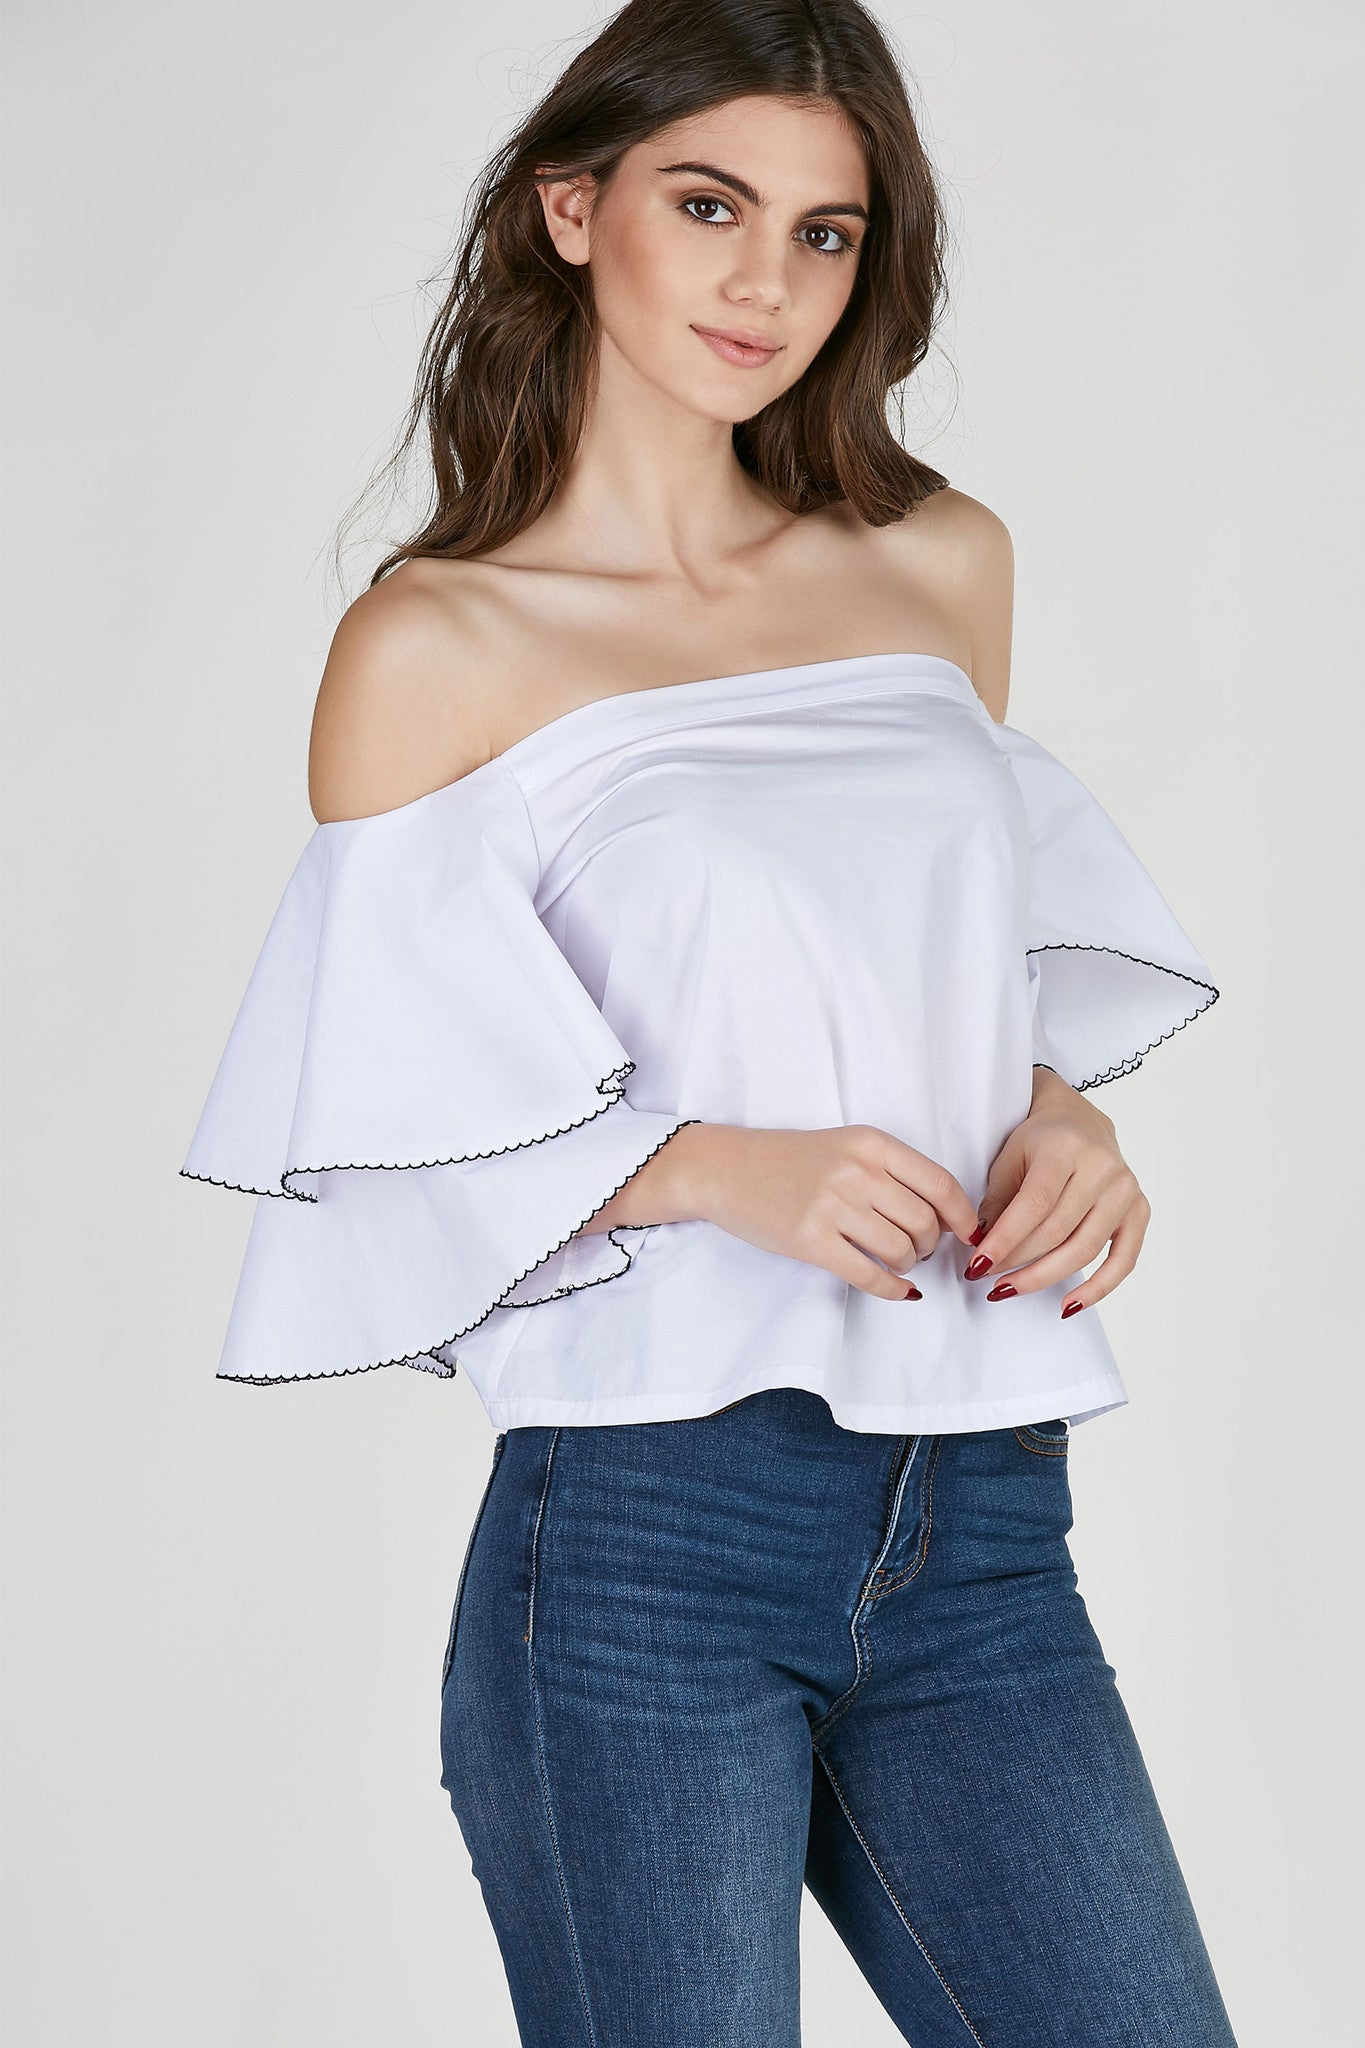 Lightweight off shoulder top with tiered flared sleeves. Contrast trim detailing with boxy fit.